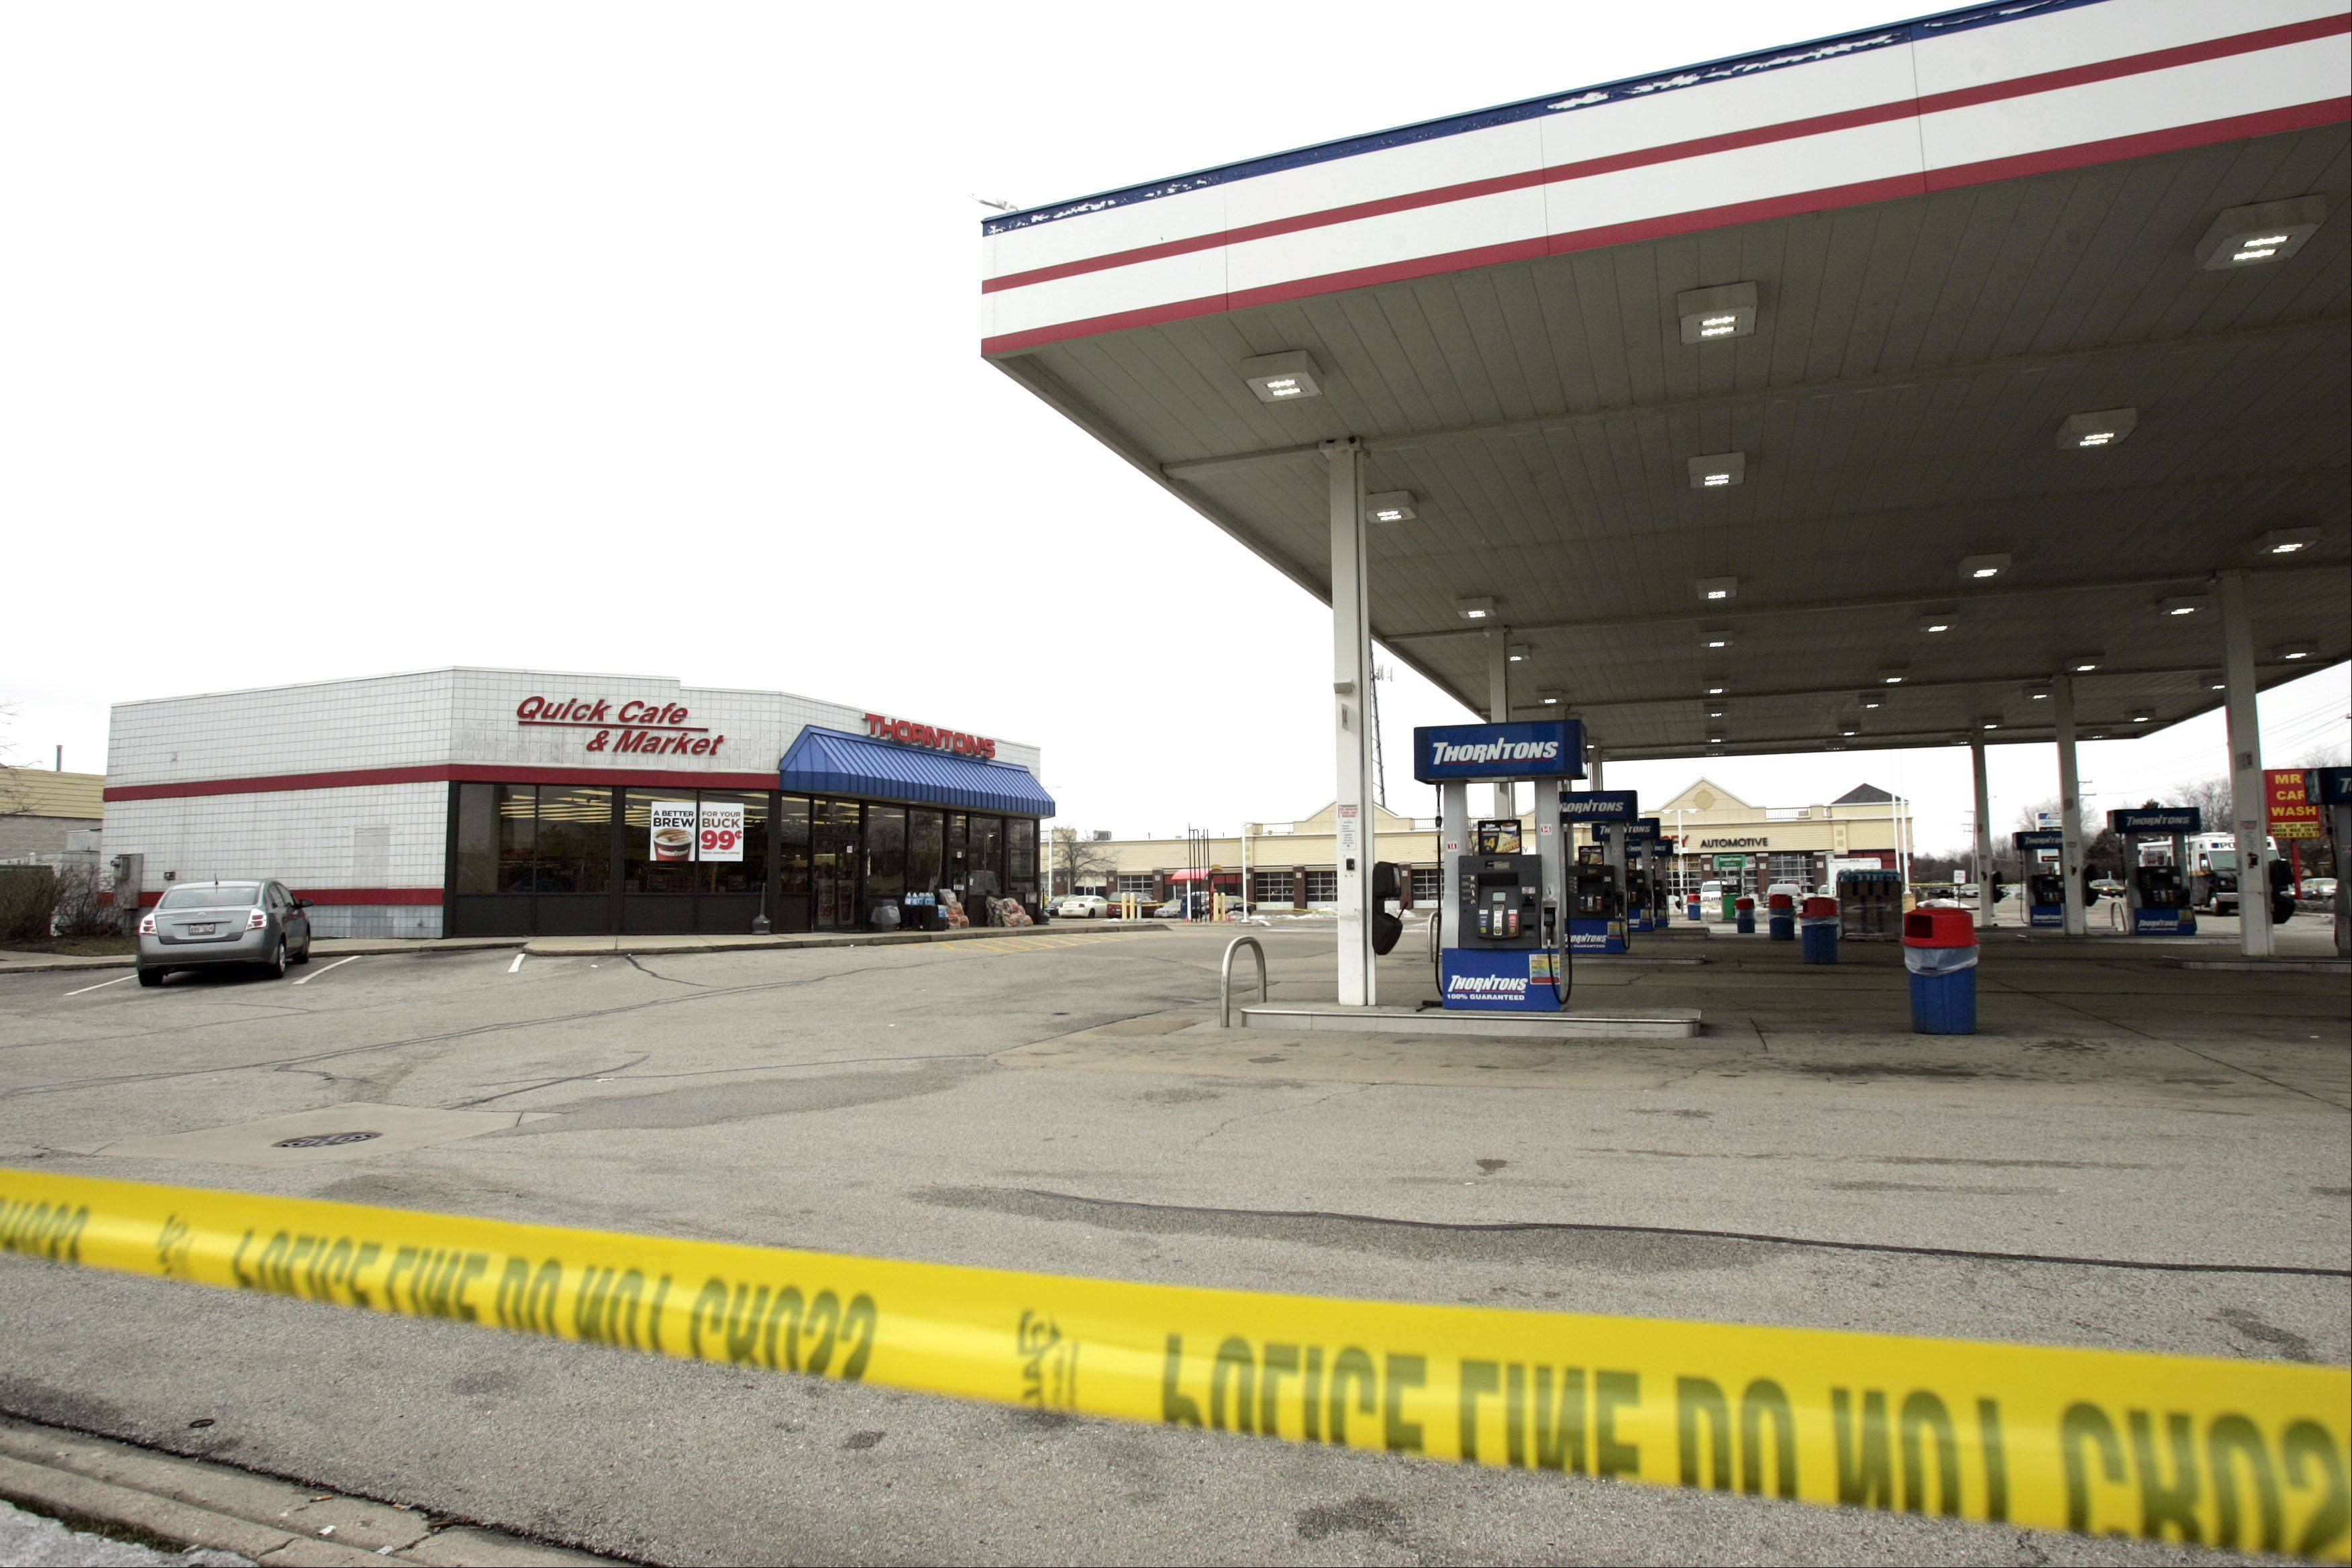 Police tape surrounds Thornton�s gas station at 2 N. Barrington Road in Streamwood where authorities say 24-year-old Anandkumar Jaiswal was stabbed to death in an apparent robbery. Family members say Jaiswal was a friendly young man who supported his family and hoped to attend college.